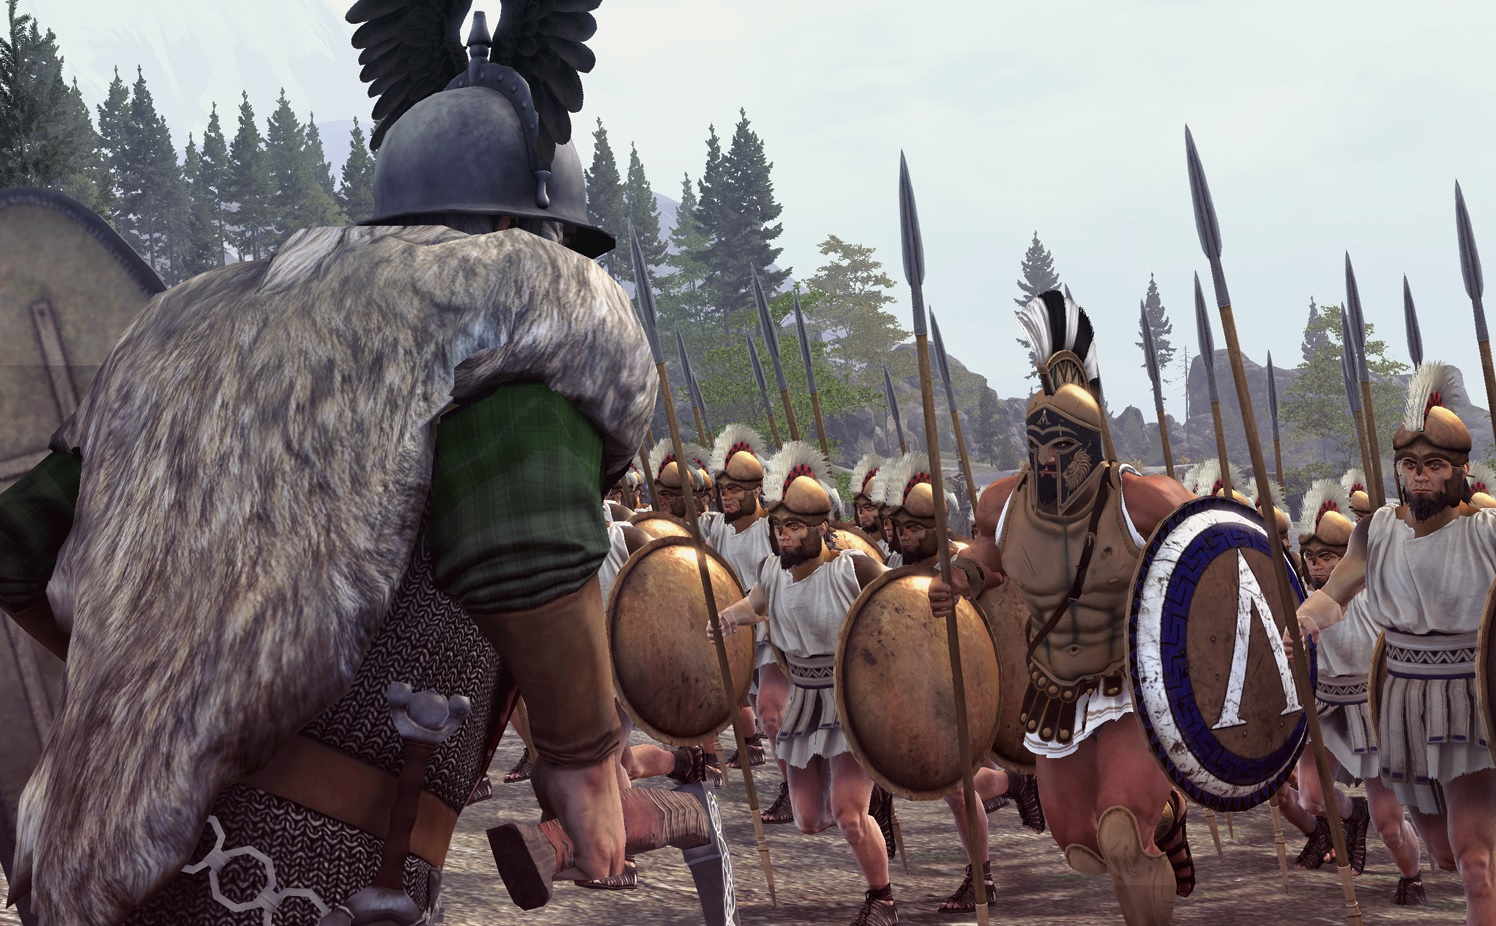 Total War: Arena's open beta starts today, now with added elephants